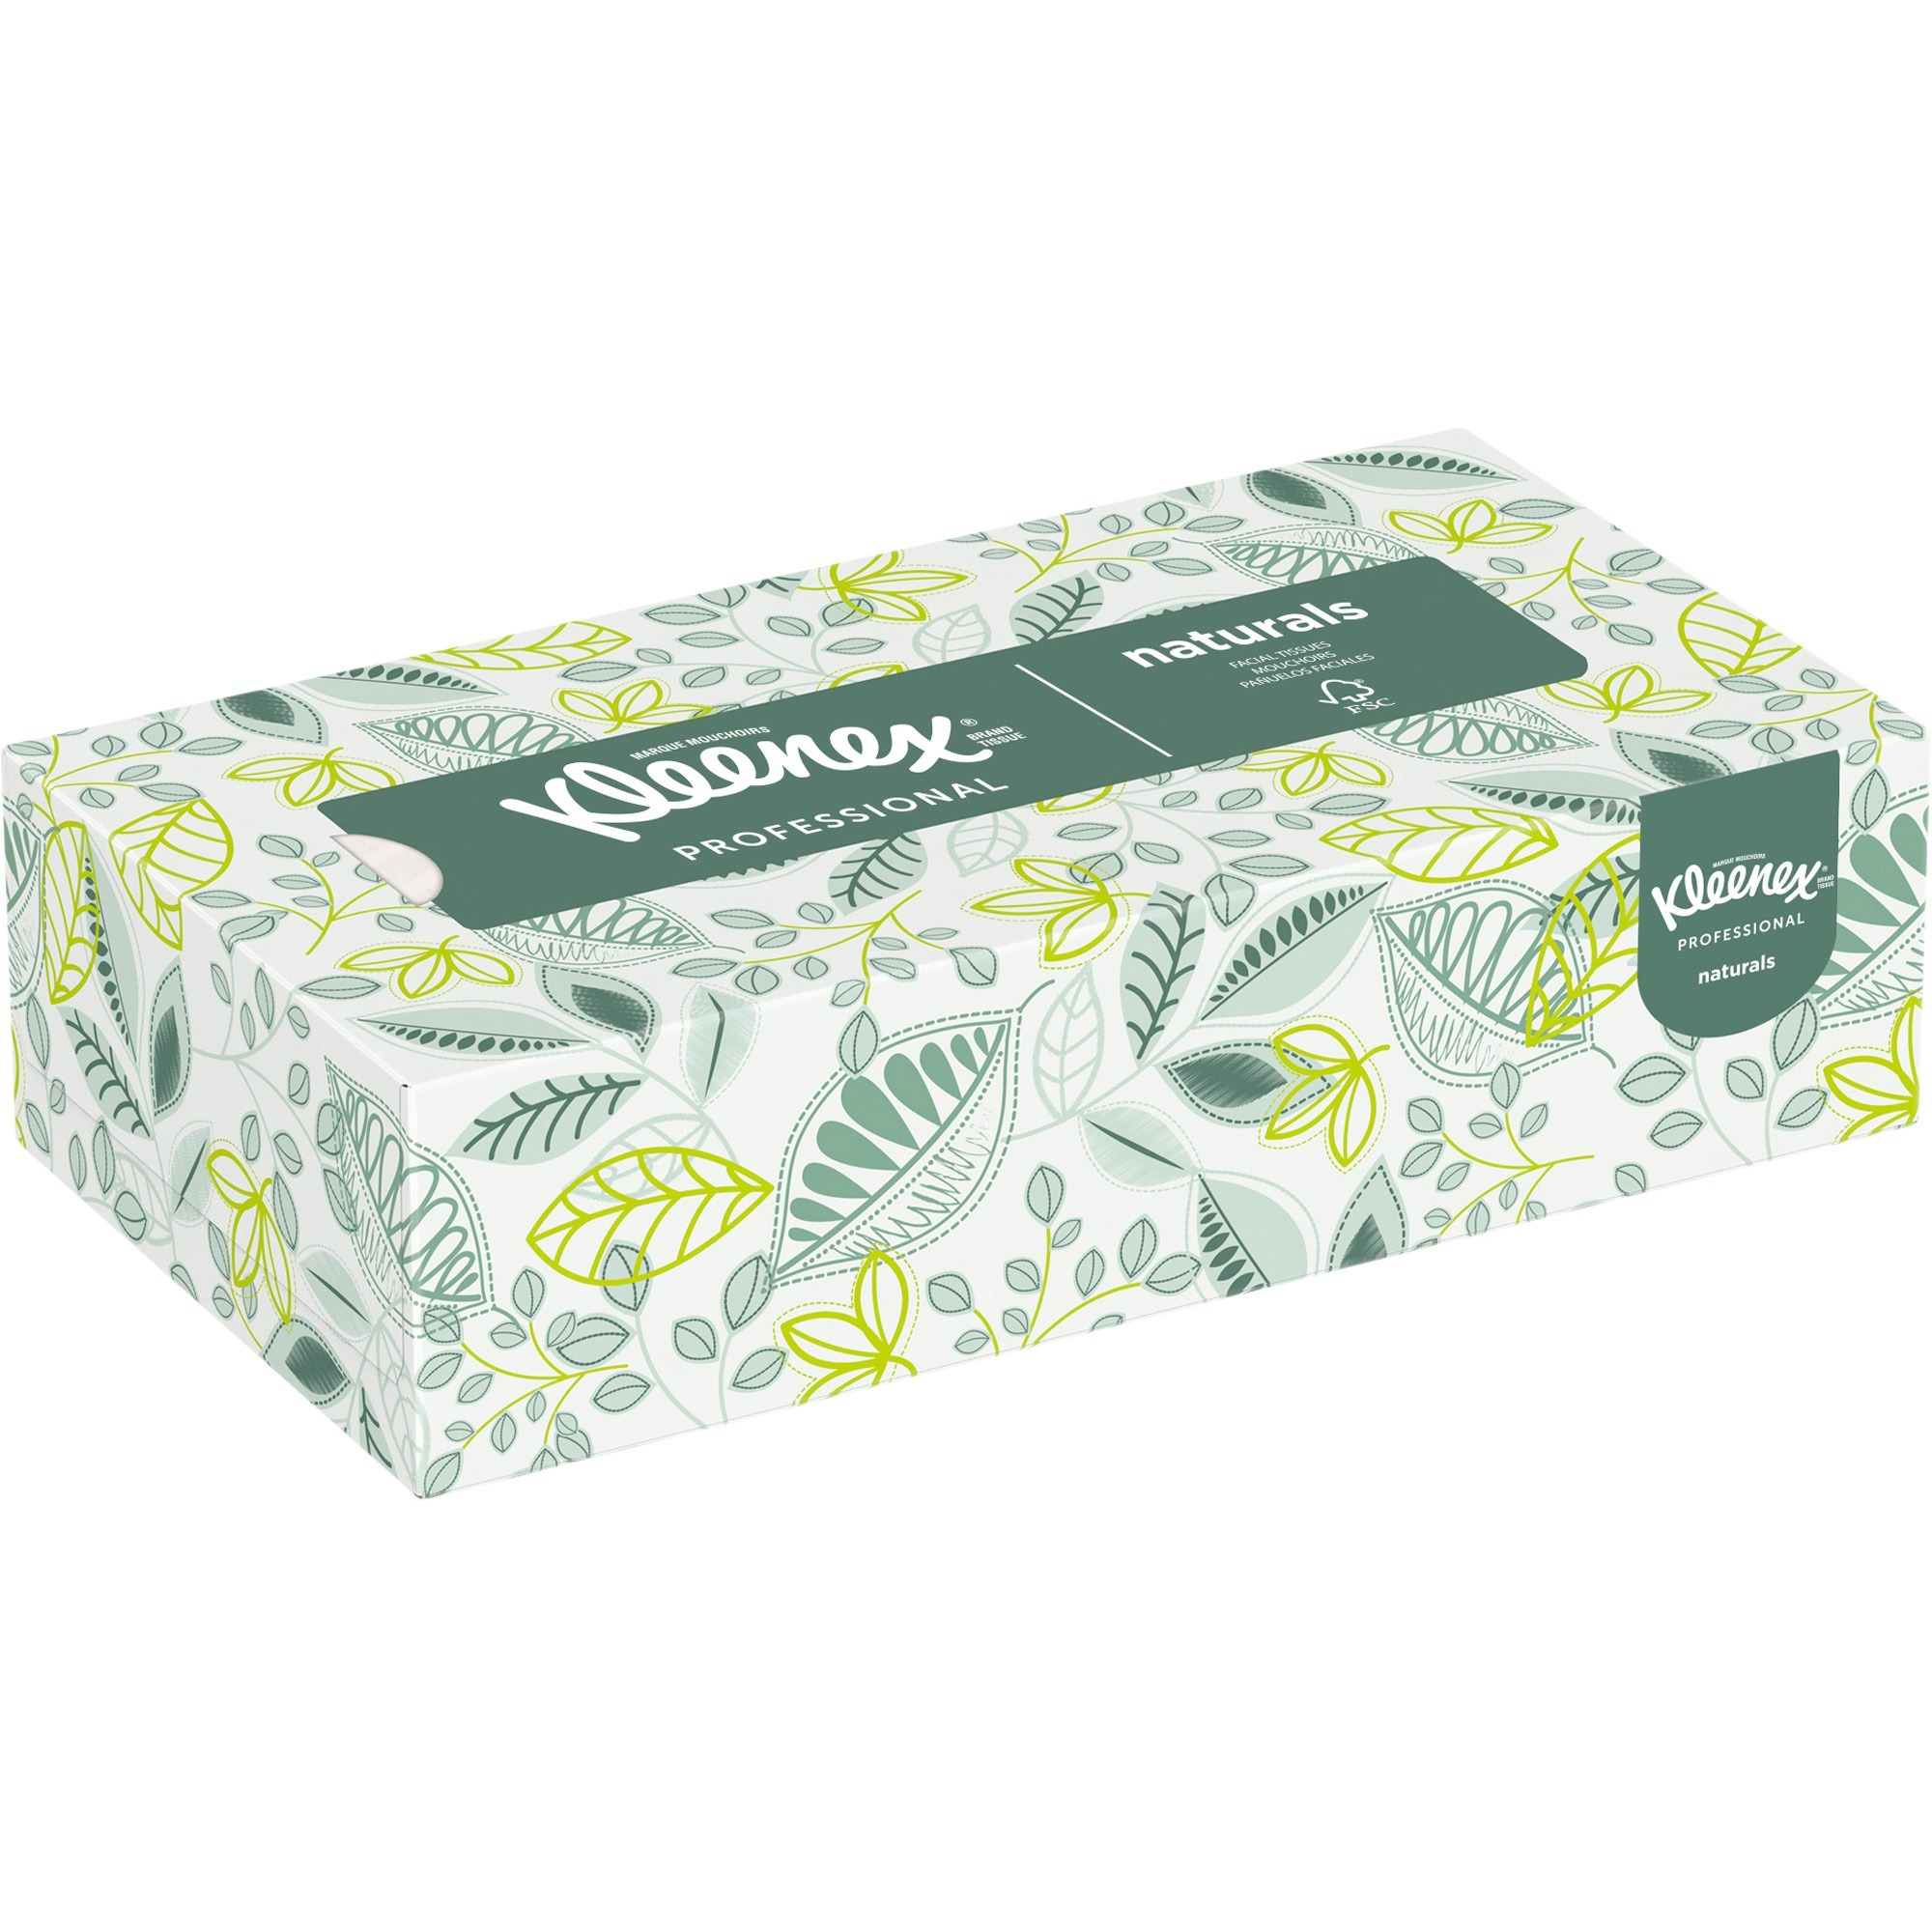 12 Bundles of 3 Boxes for a Total of 36 Boxes in The case, 95 Tissues per Box Kimberly-Clark Kleenex 21200 Boutique Facial Tissue with Floral Box 5 Height x 4.375 Width x 4.375 Length White